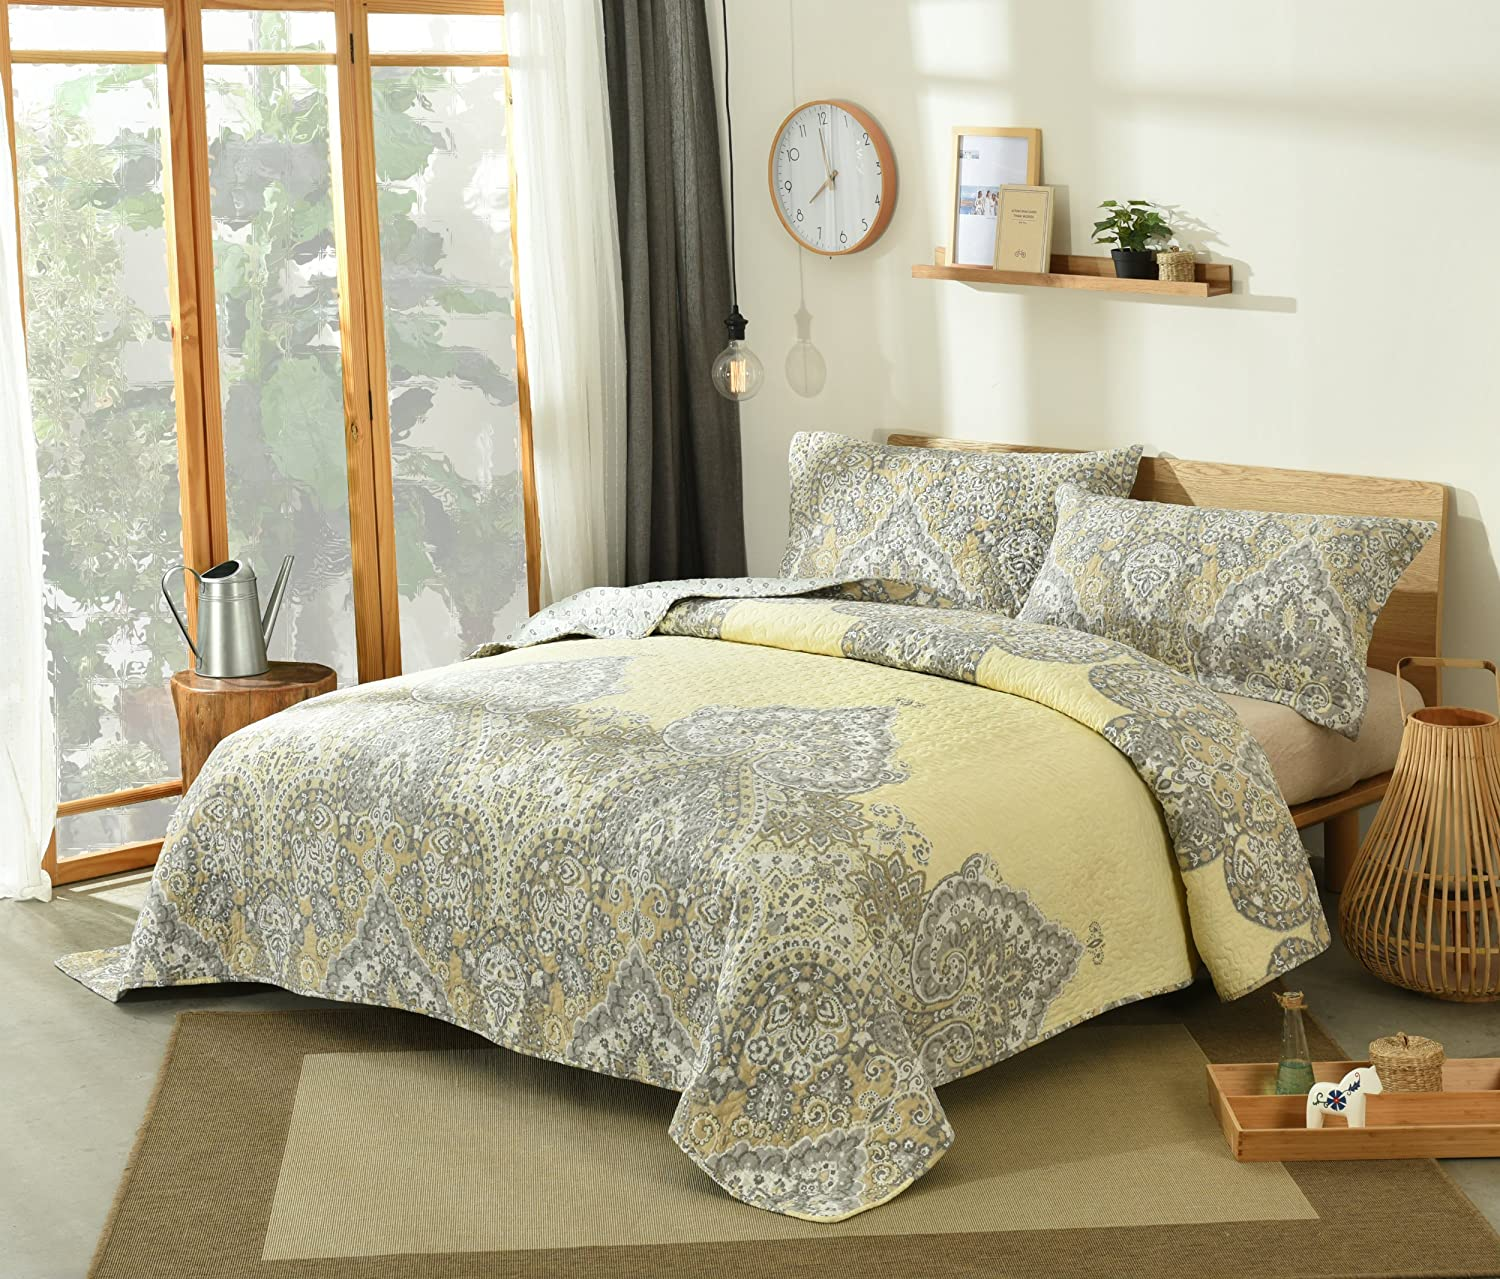 DaDa Bedding Pale Daffodil Bedspread Set - Bohemian Light Yellow Grey Floral Paisley - Cal King - 3-Pieces